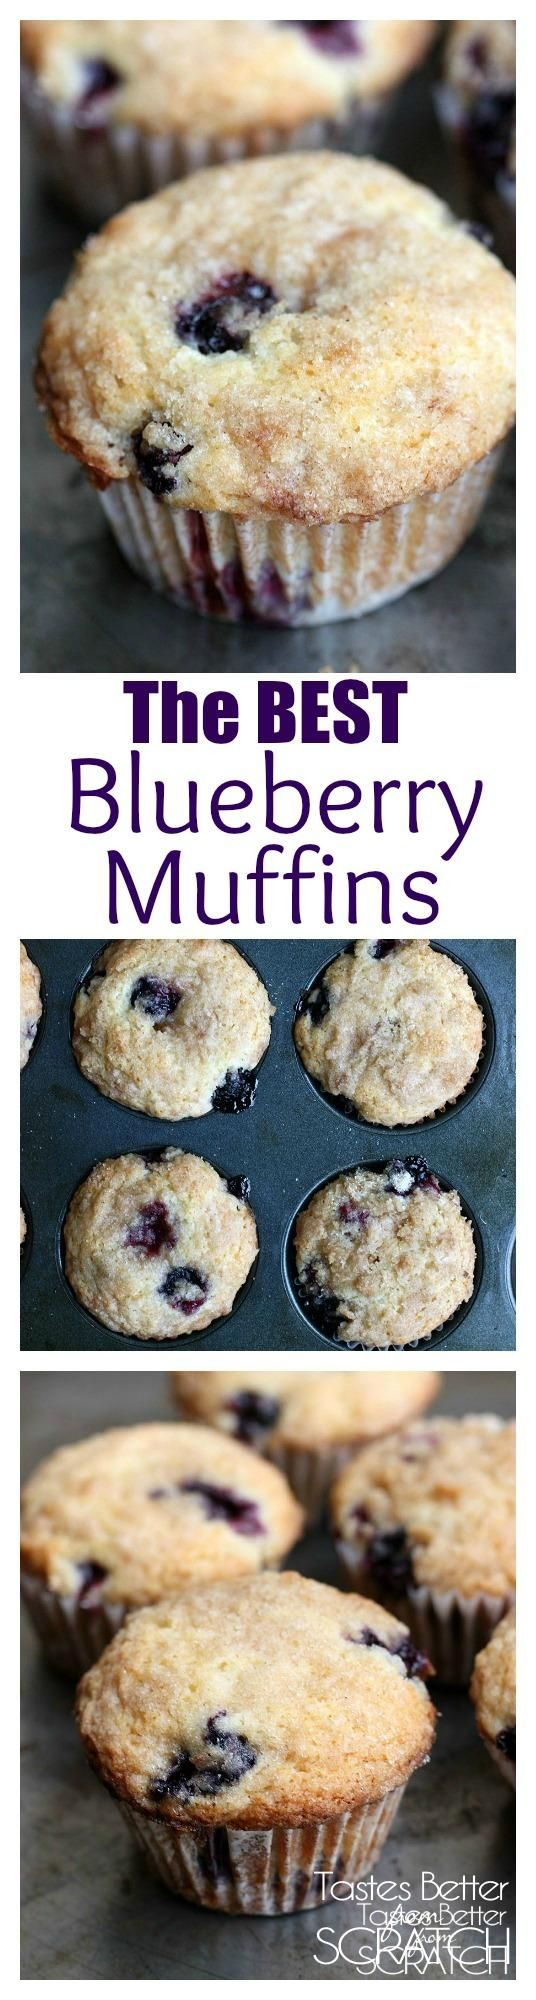 The BEST homemade Blueberry Muffins EVER! Jumbo muffins with a cinnamon sugar crumb topping. Recipe on TastesBetterFromScratch.com